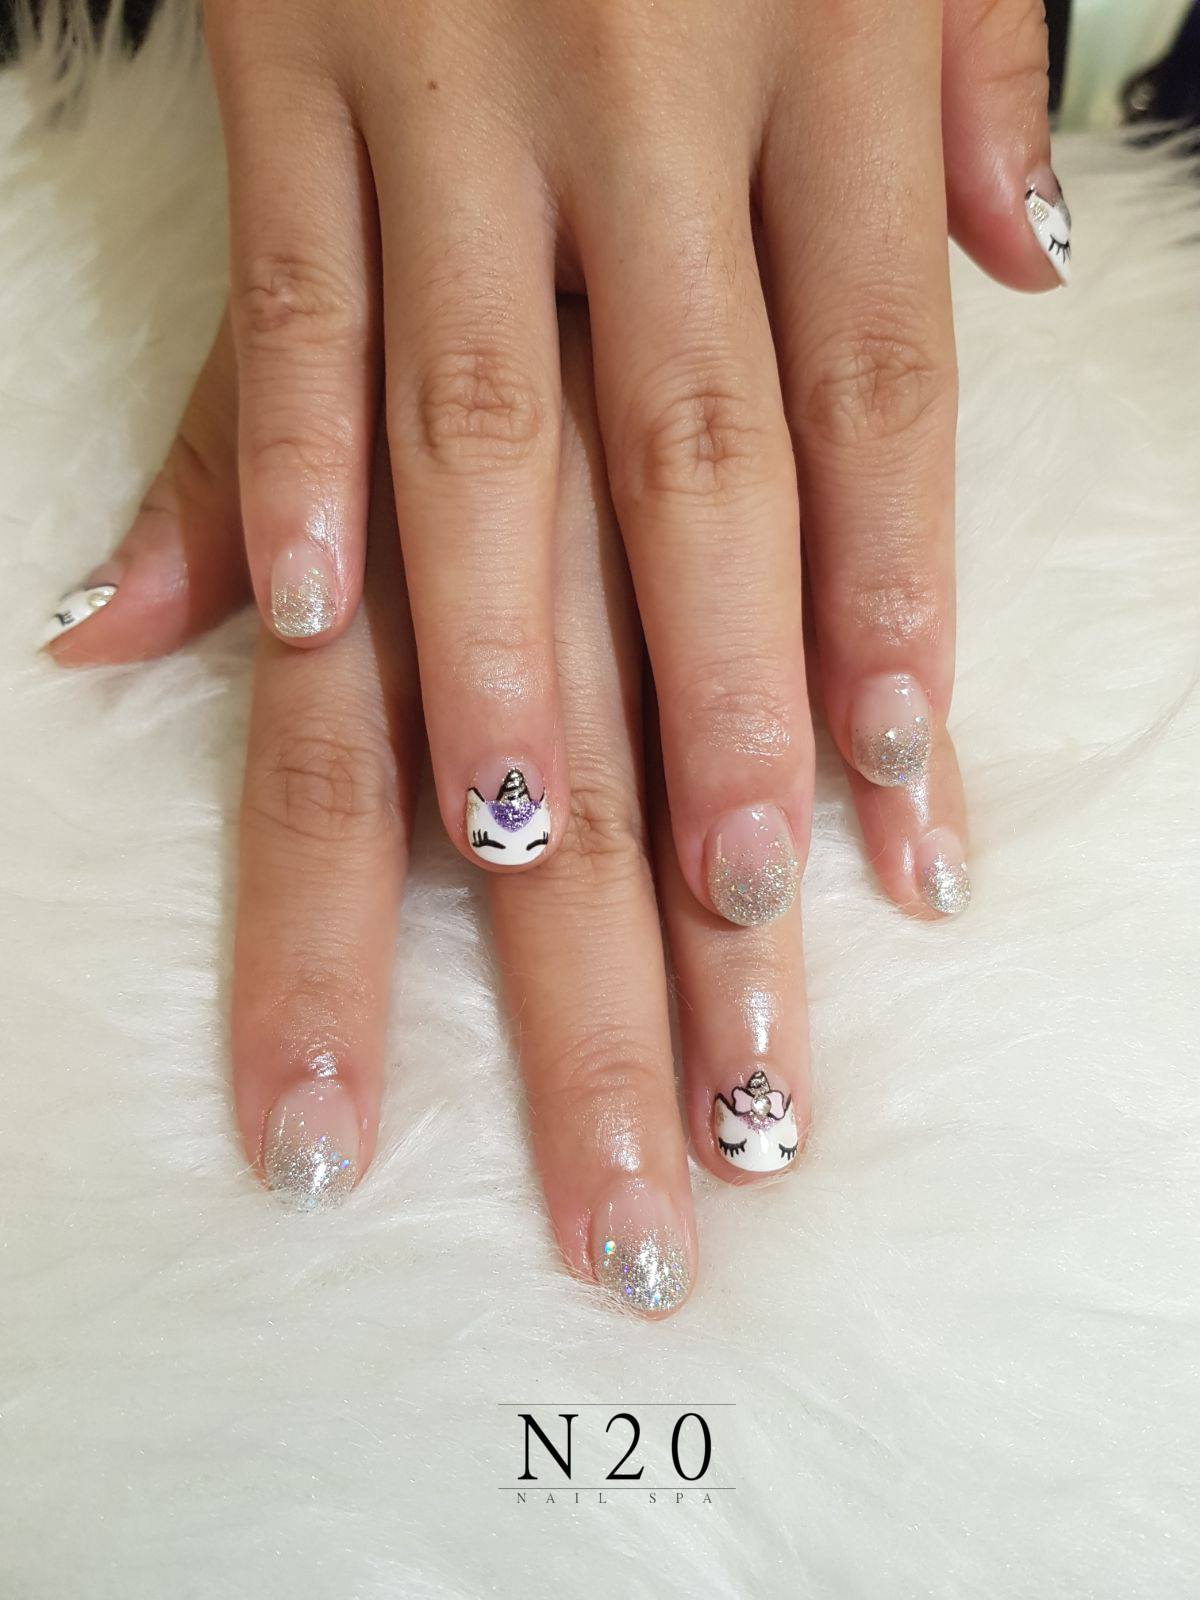 "Feline cats manicure nail art ""Lazy sleep cat eyes with lashes"" and silver glitters - N20 Nail Spa"